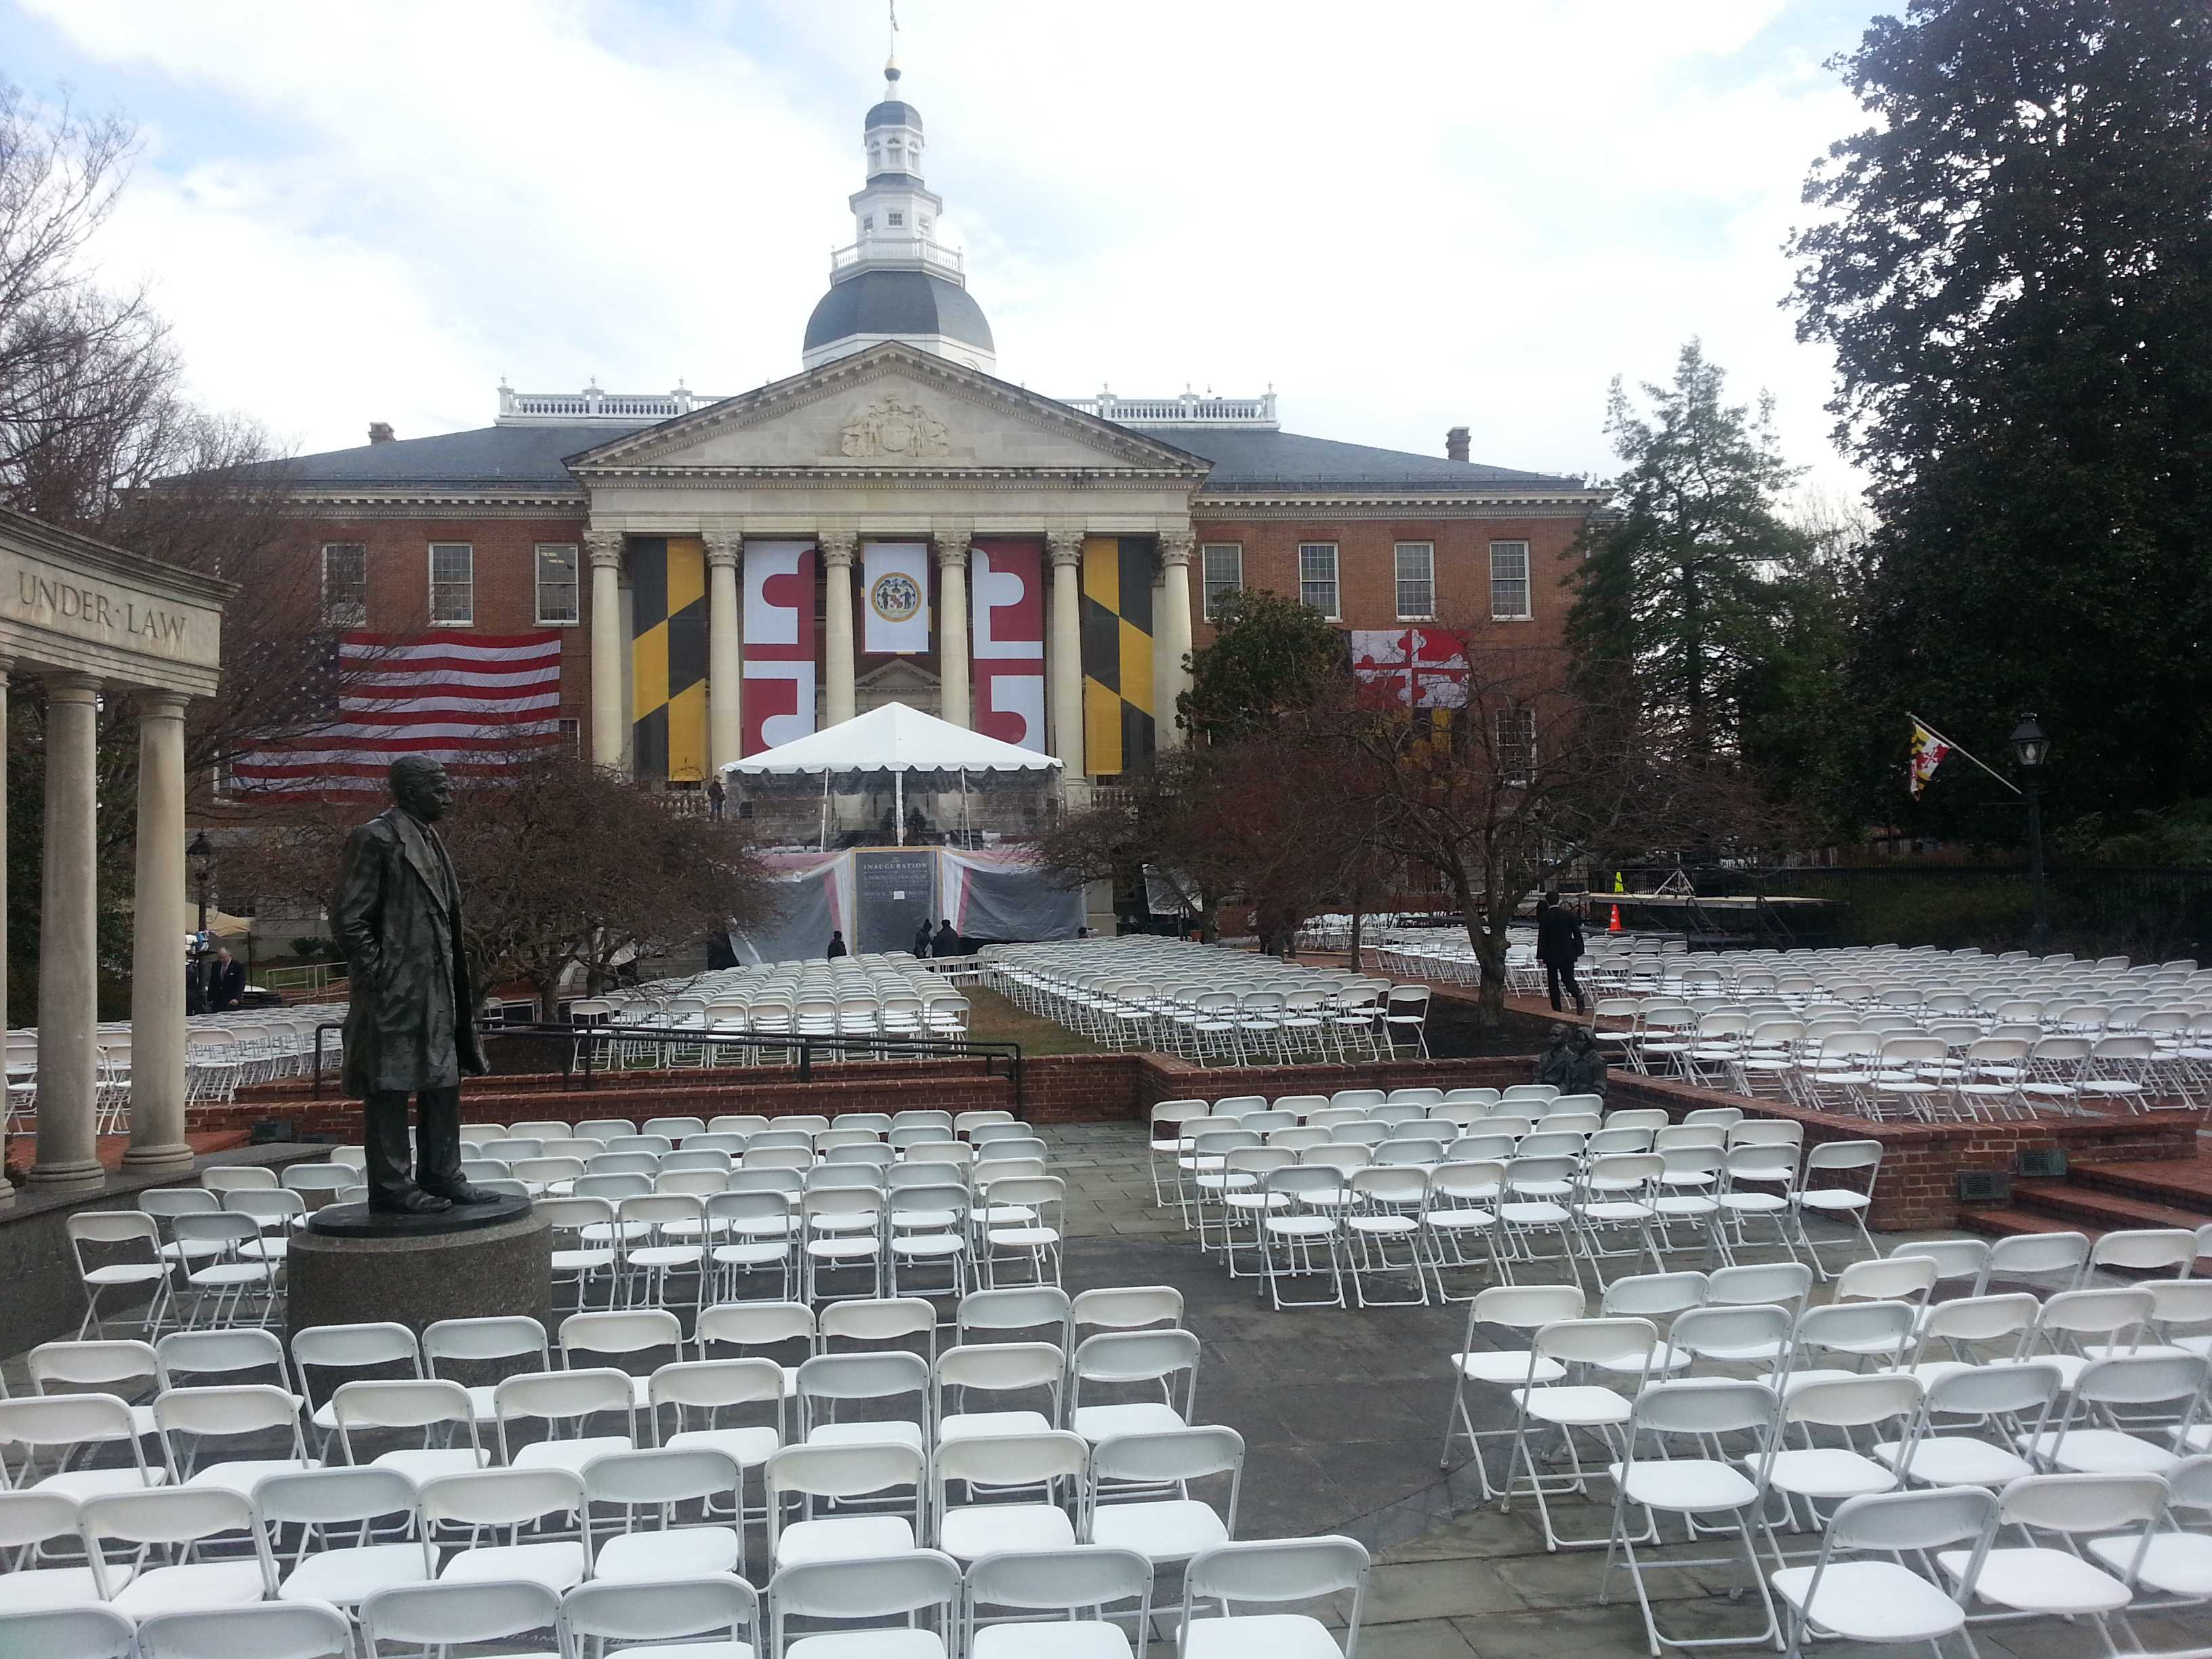 All that is missing are the dignitaries; the courtyard in Annapolis is readied for the inauguration